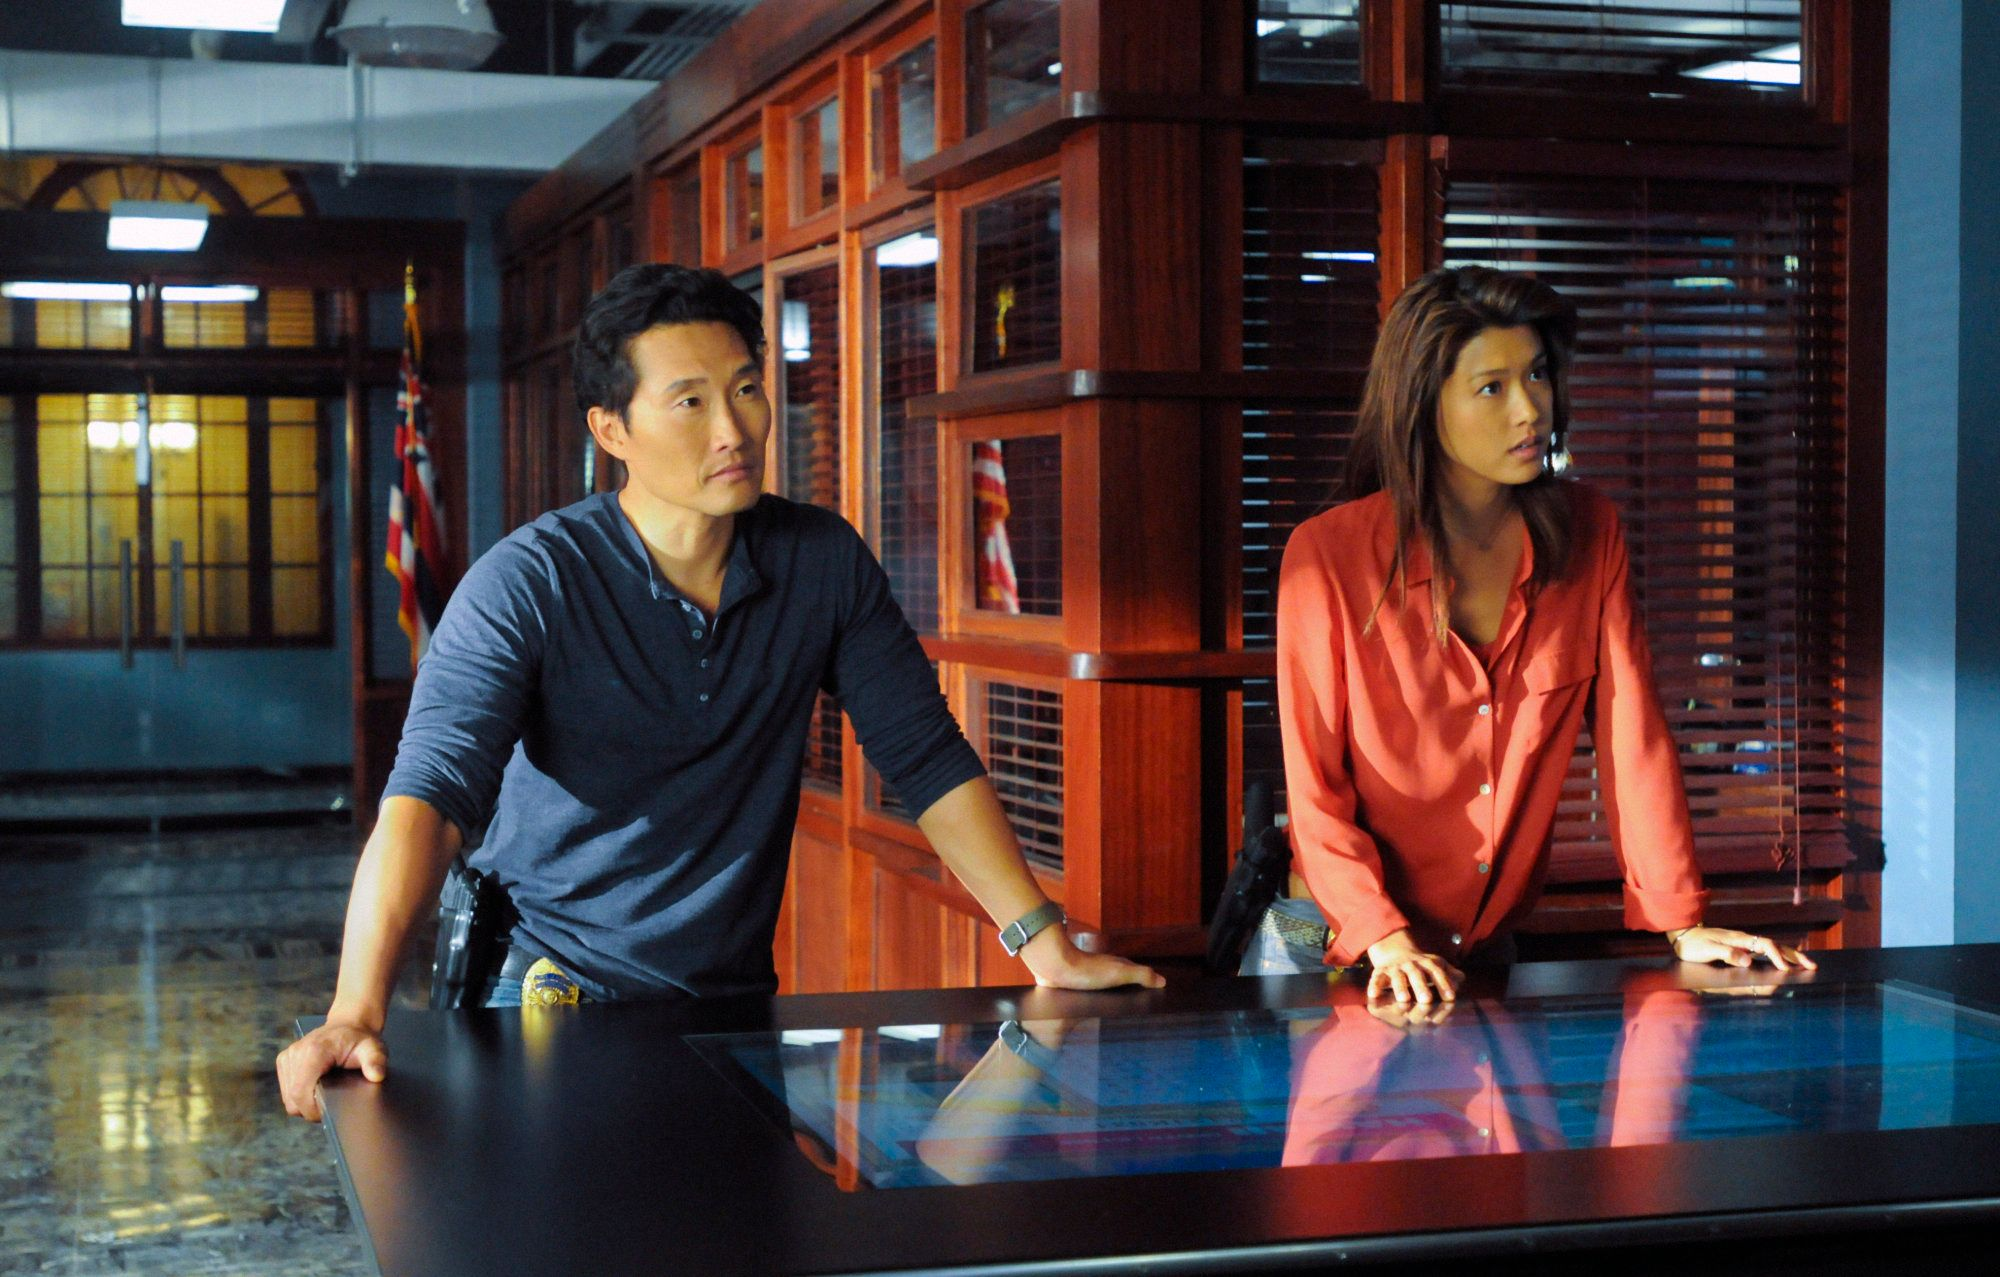 HONOLULU - SEPTEMBER 12: 'Ohuna' -- The team (Daniel Dae Kim, left and Grace Park, right) investigates the murder of a young computer hacker, on HAWAII FIVE-0, Monday, Nov. 19 (10:00-11:00 PM, ET/PT) on the CBS Television Network.   (Photo by Norman Shapiro/CBS via Getty Images)